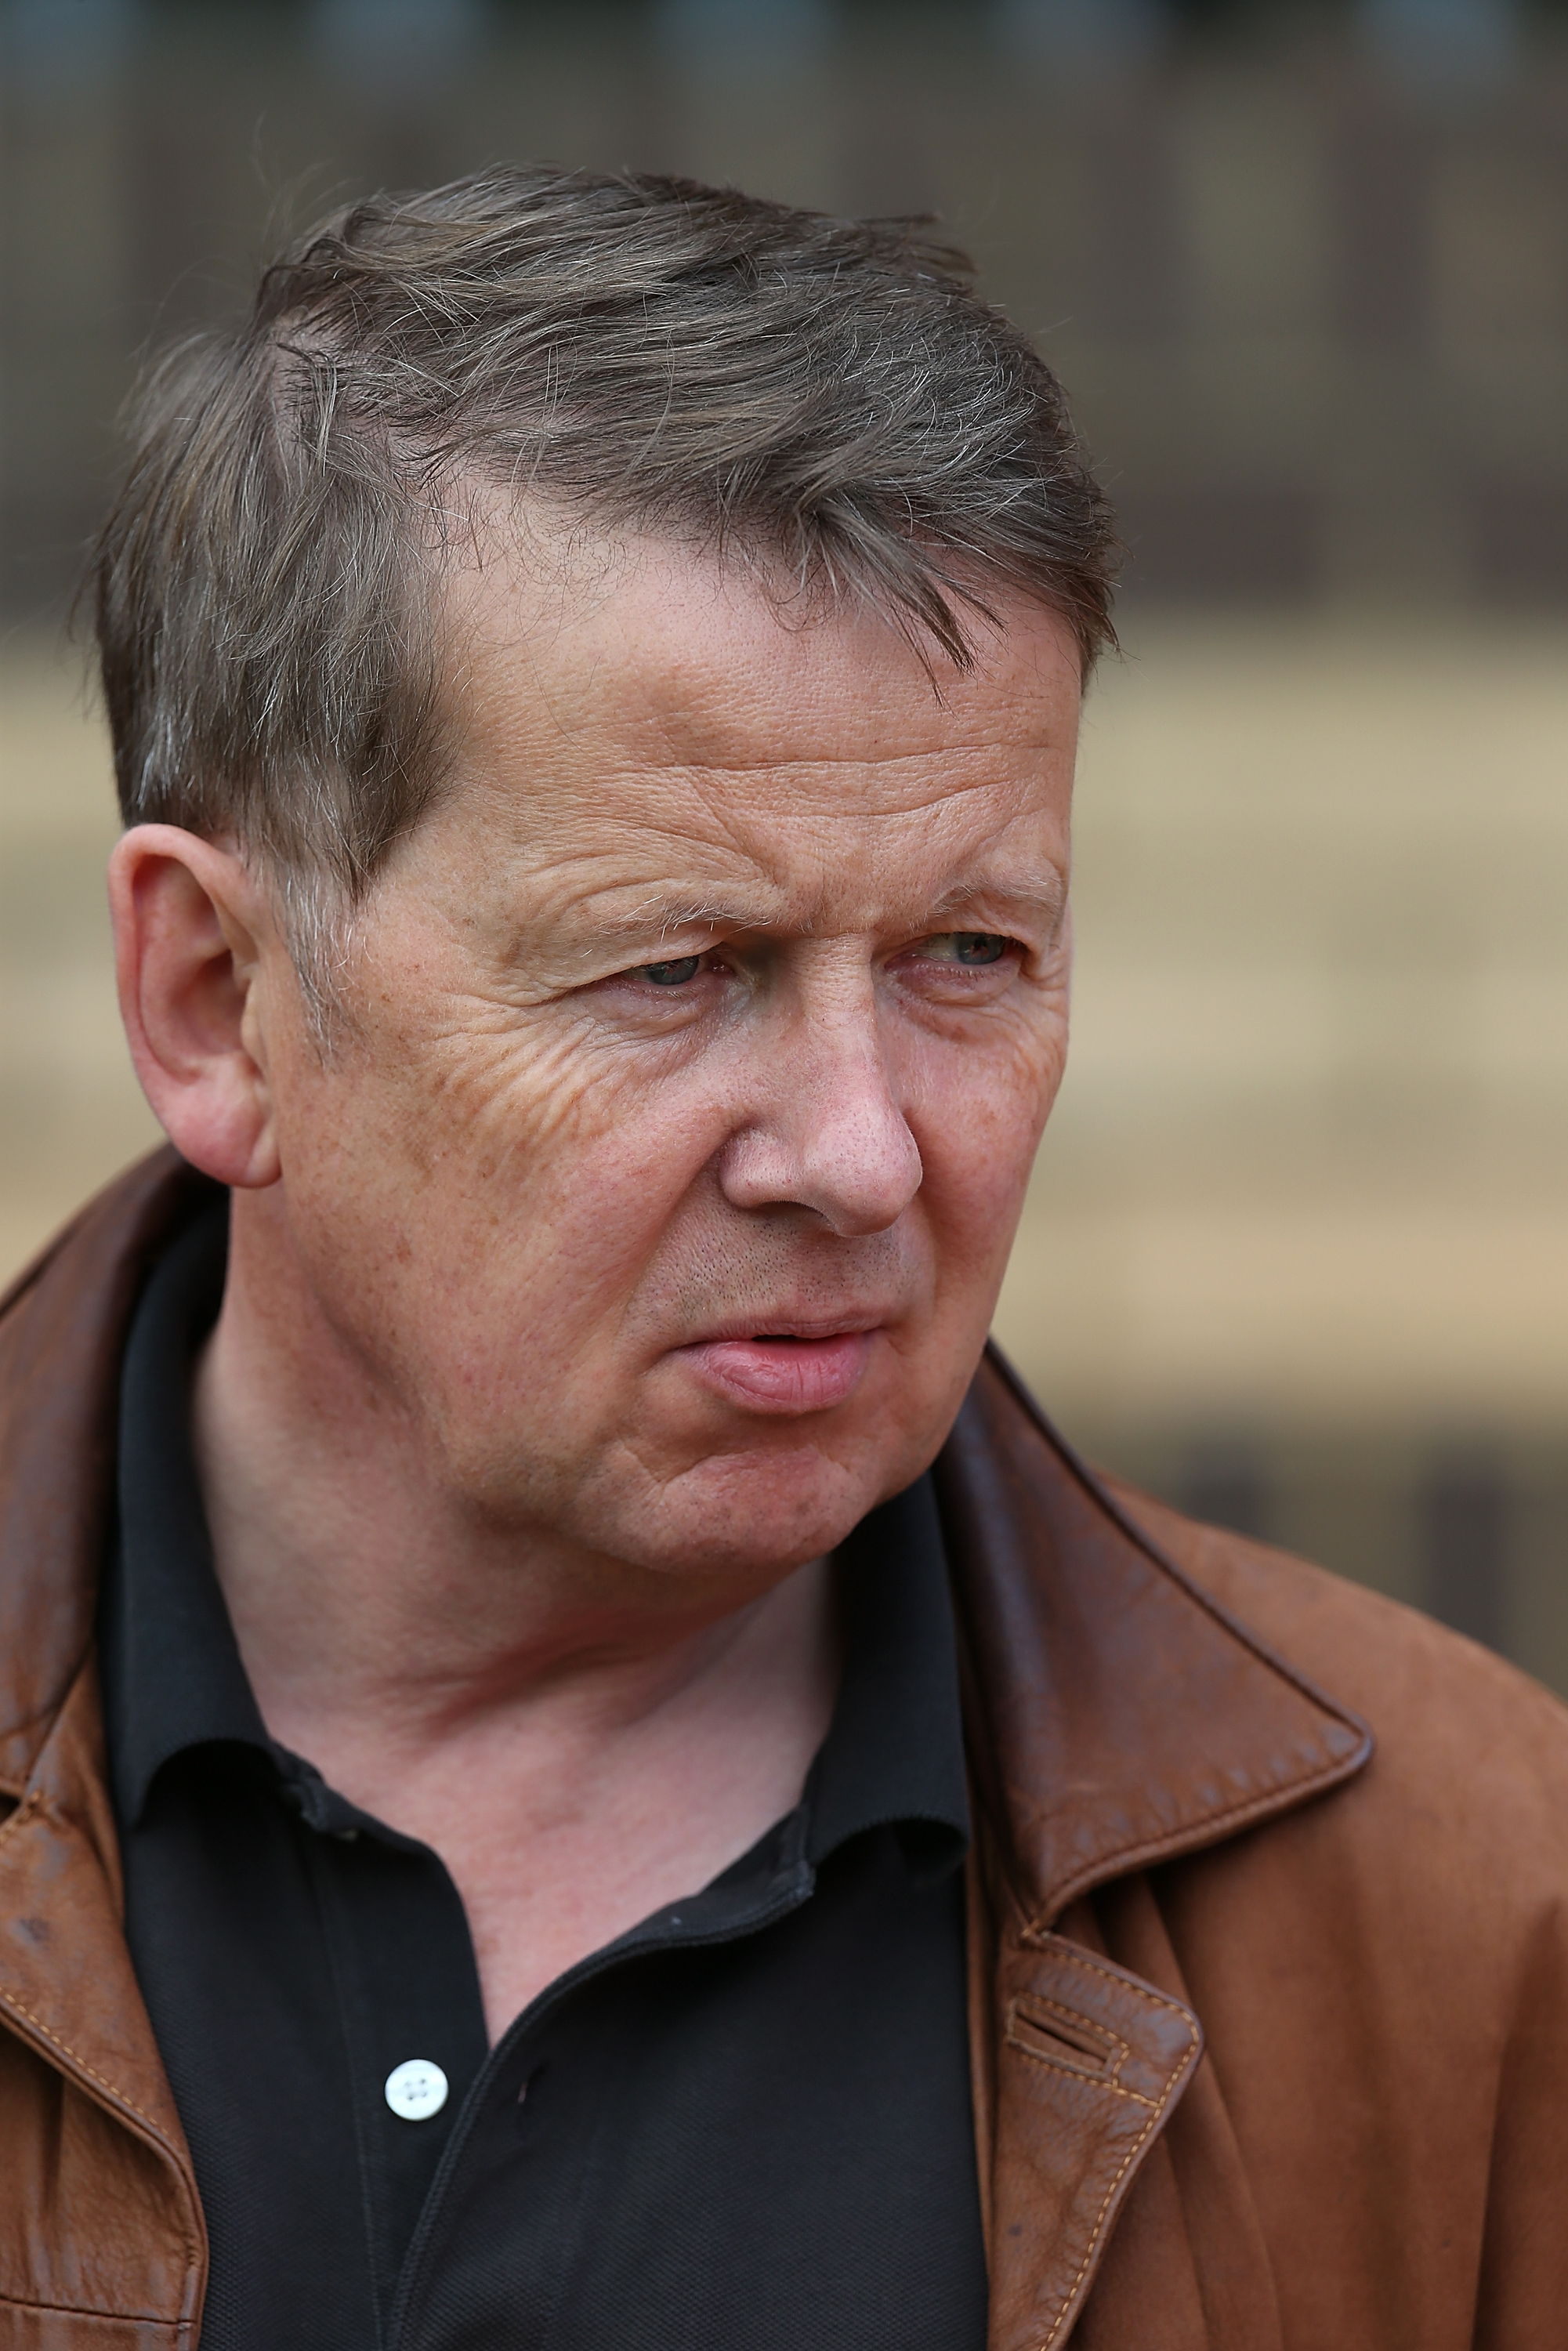 HIGH WYCOMBE, ENGLAND - OCTOBER 03:  BBC Breakfast TV presenter and Wycombe Wanderers fan Bill Turnbull looks on prior to the Sky Bet League Two match between Wycombe Wanderers and Northampton Town at Adams Park on October 3, 2015 in High Wycombe, England.  (Photo by Pete Norton/Getty Images)